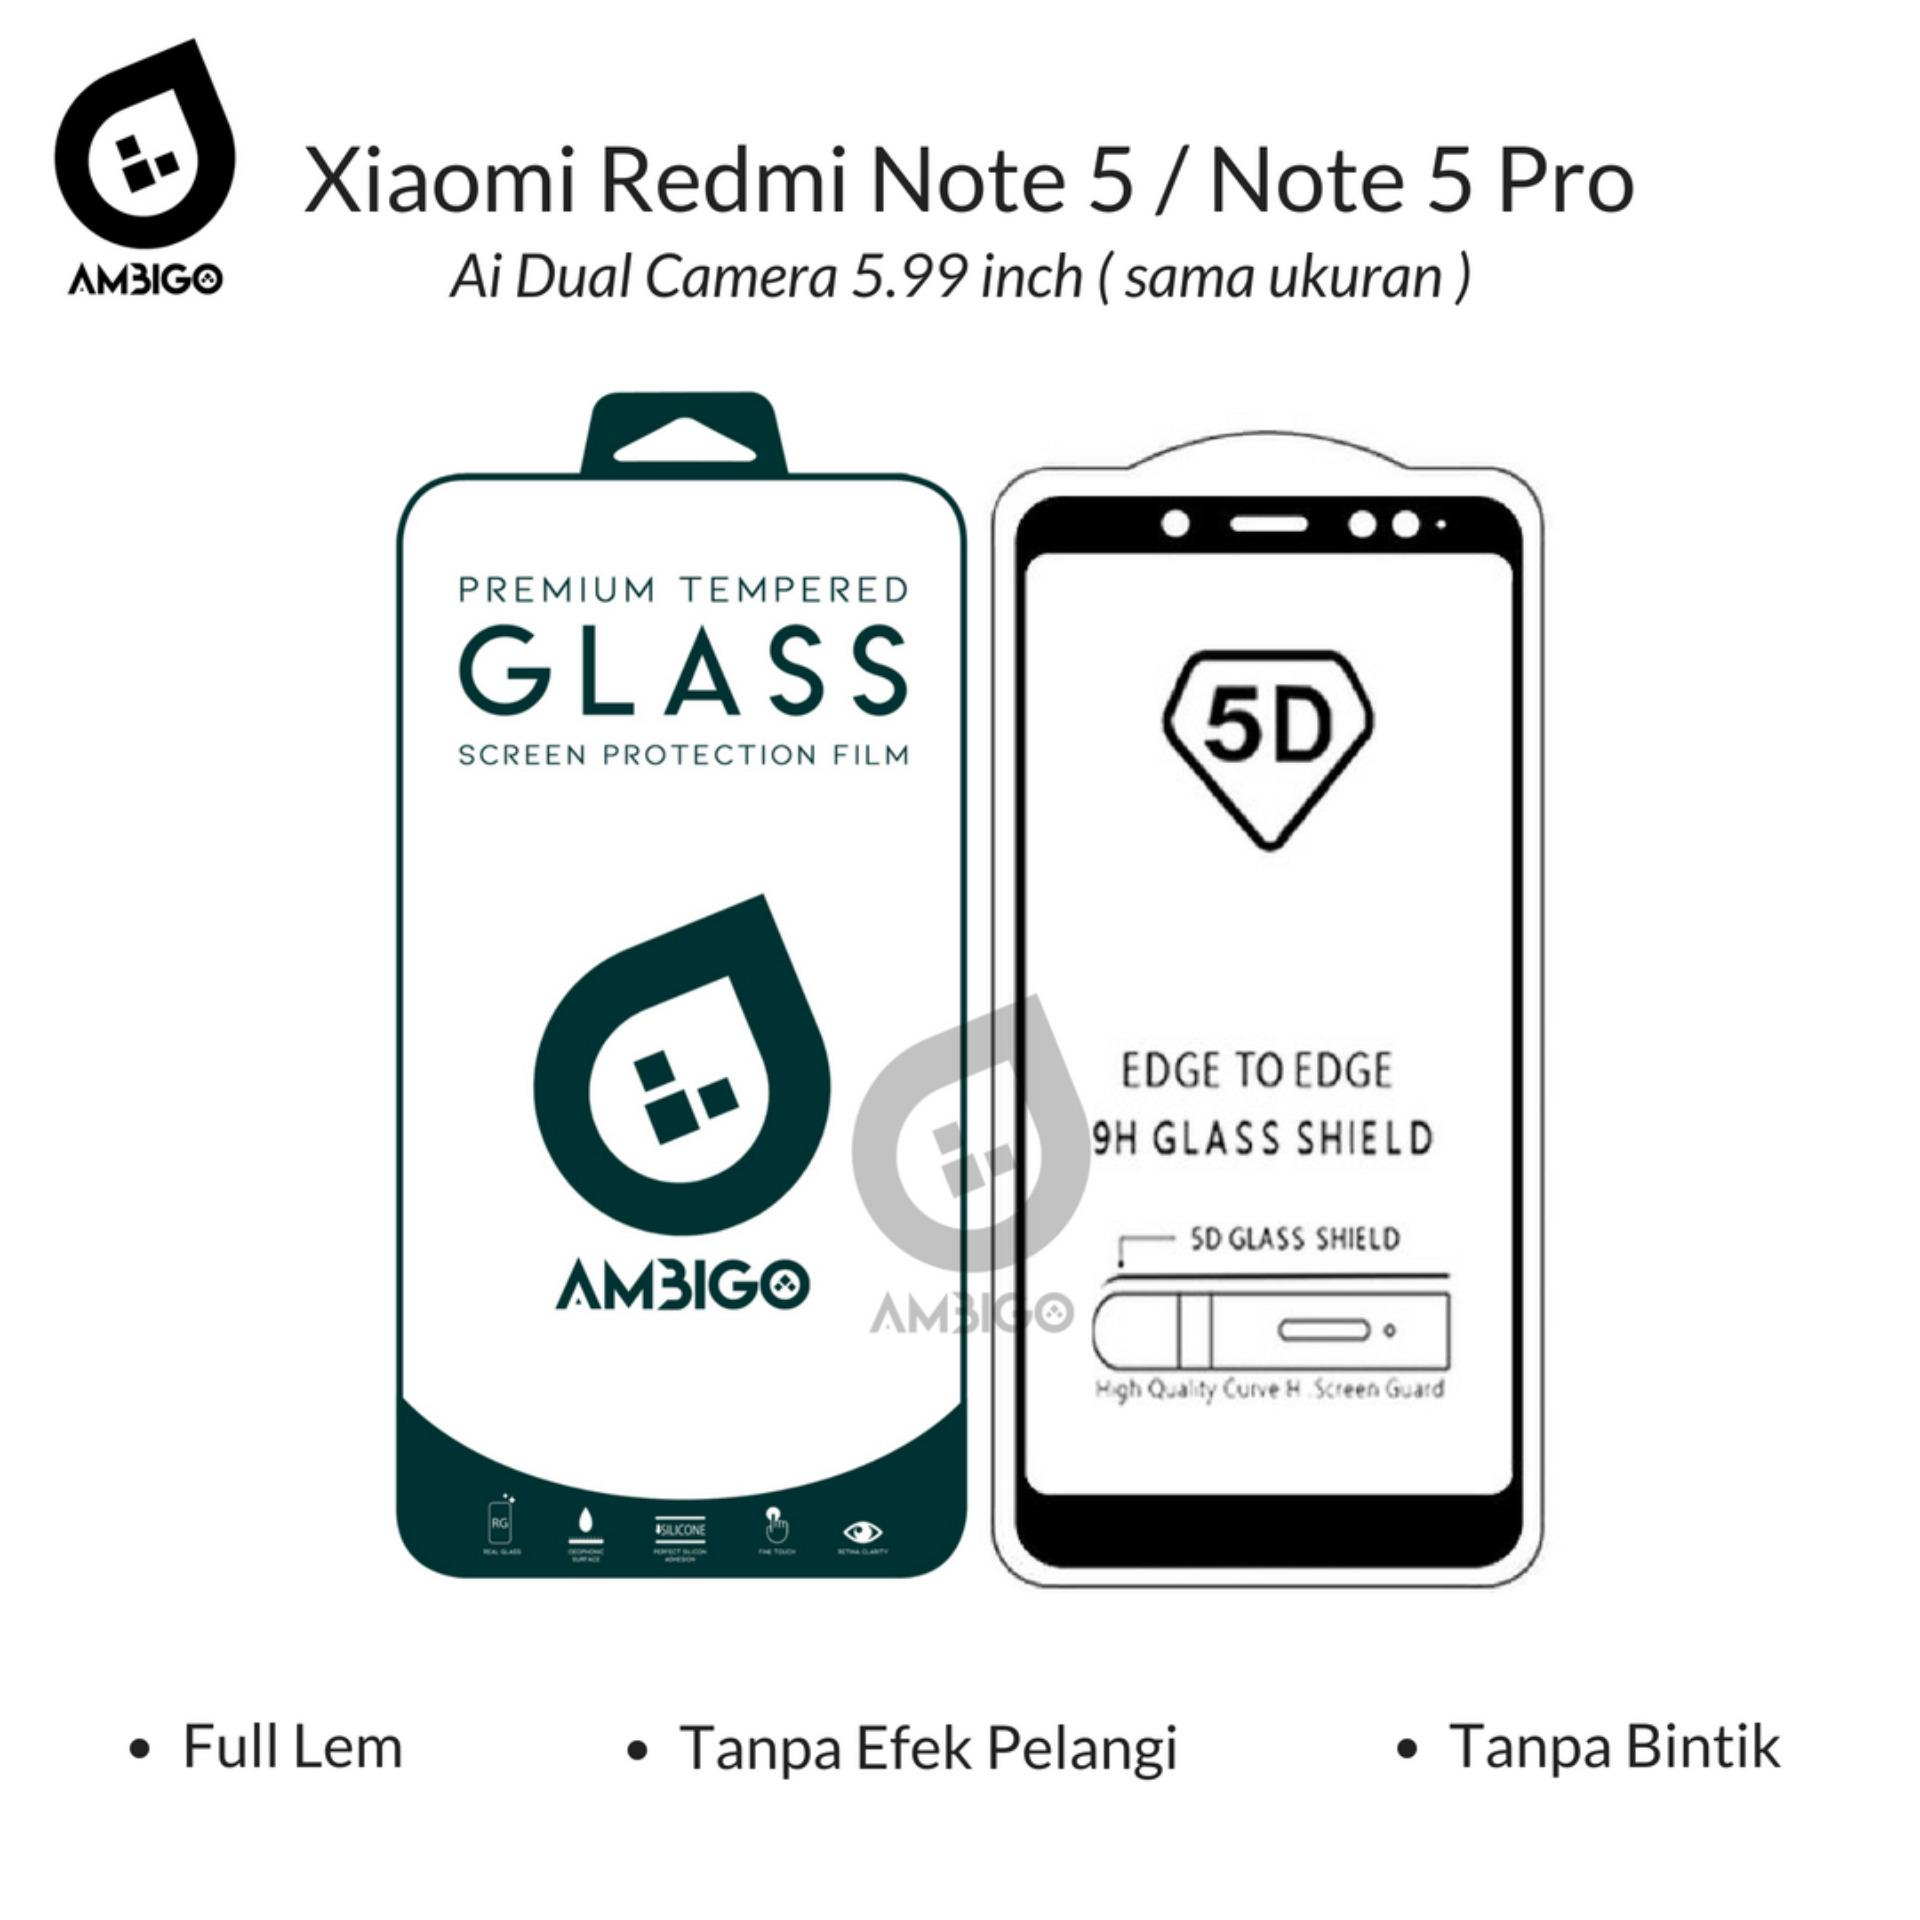 Pelindung Layar Handphone Tablet Norton Tempered Glass Xiaomi Redmi Note 3 Ambigo 5d Screen Protector 5 Pro Ai